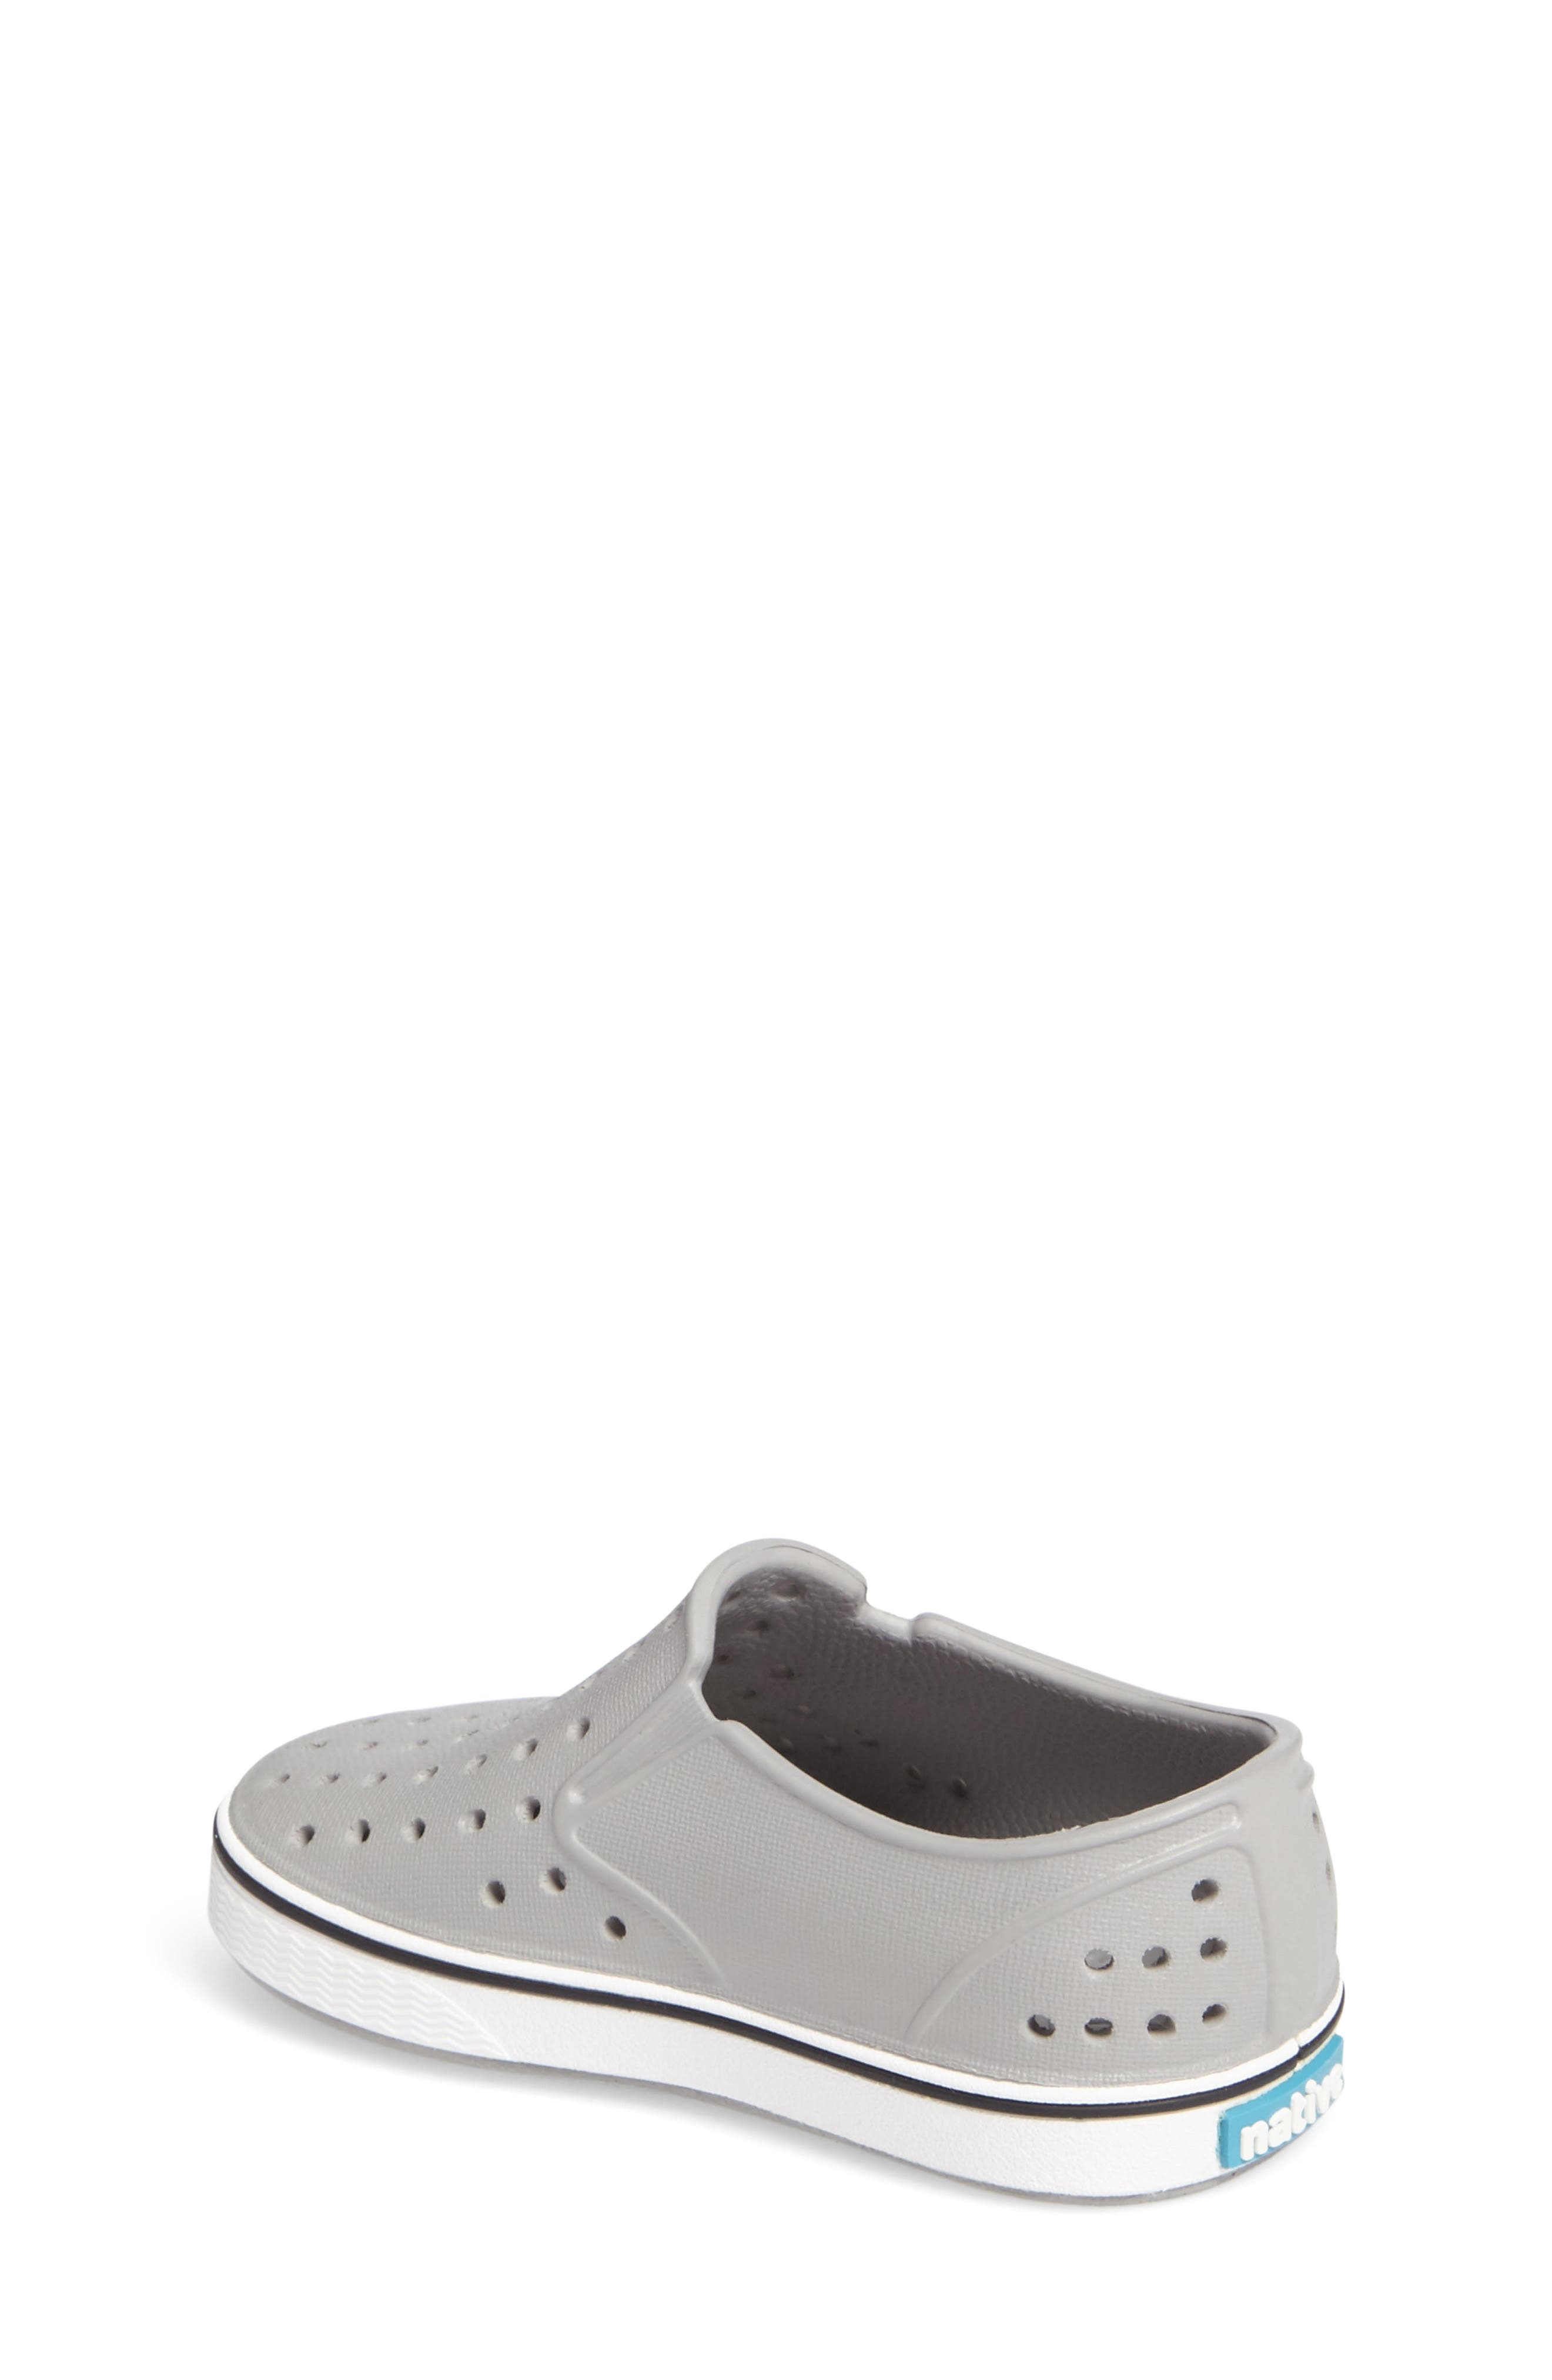 Miles Water Friendly Slip-On Sneaker,                             Alternate thumbnail 2, color,                             PIGEON GREY/ SHELL WHITE